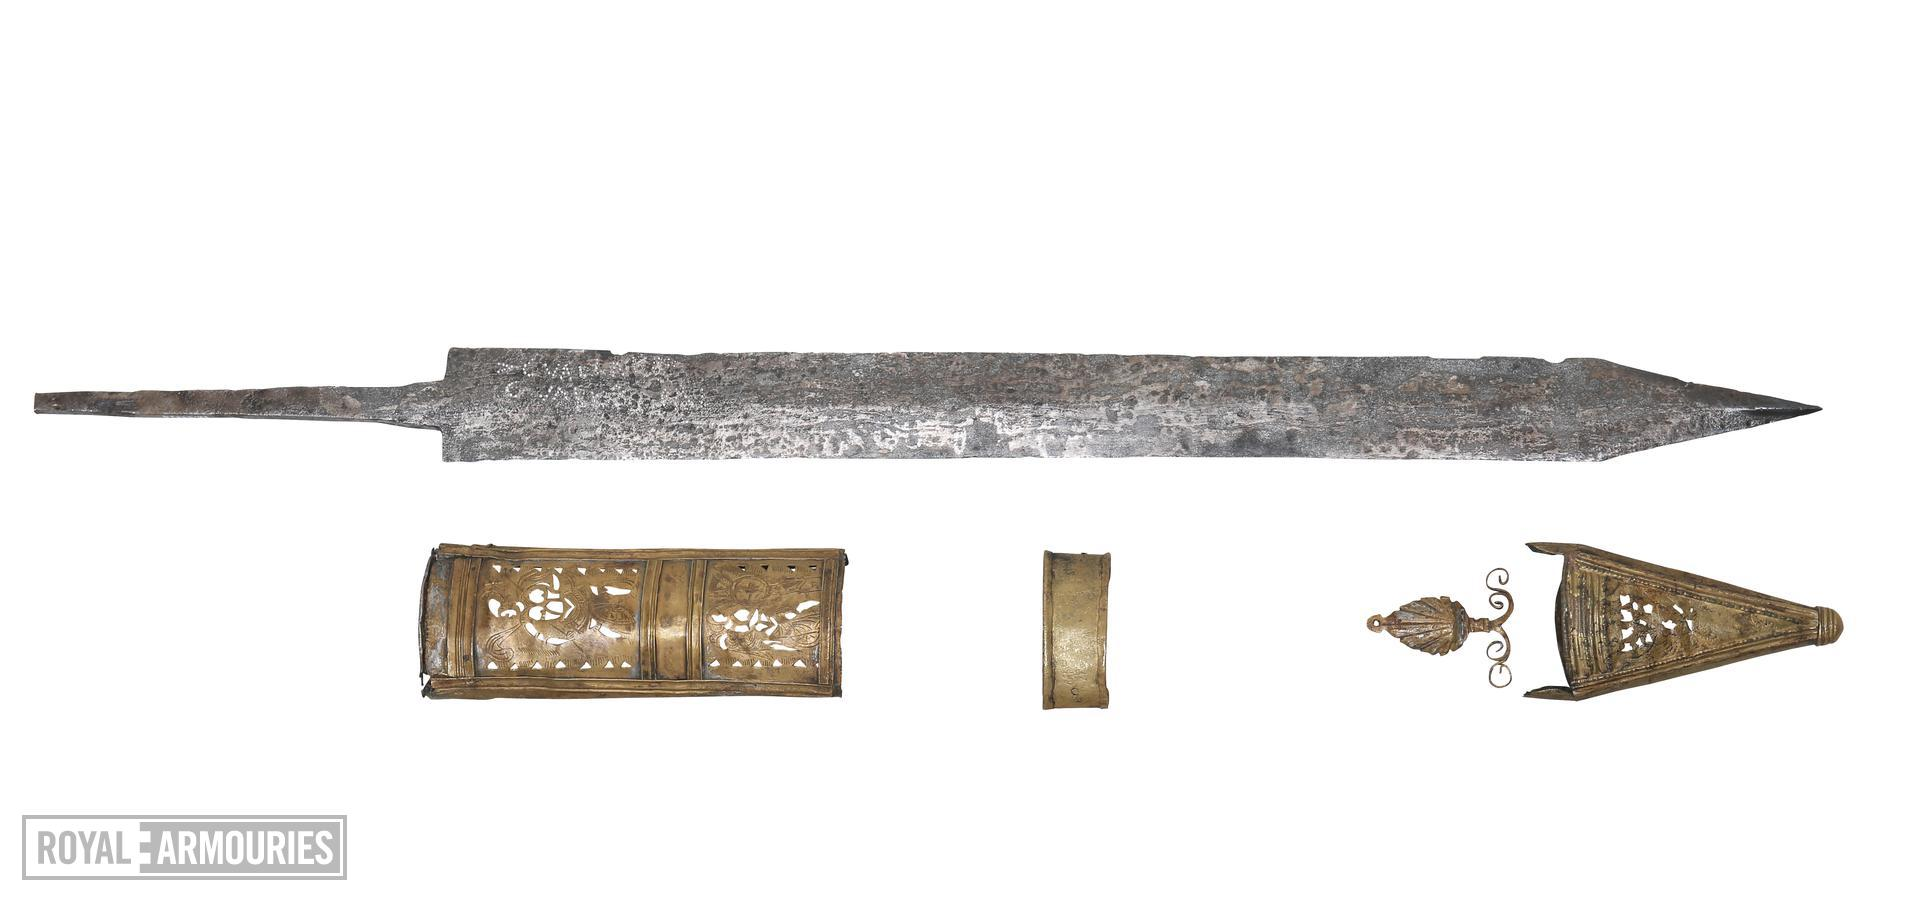 Gladius and scabbard mounts